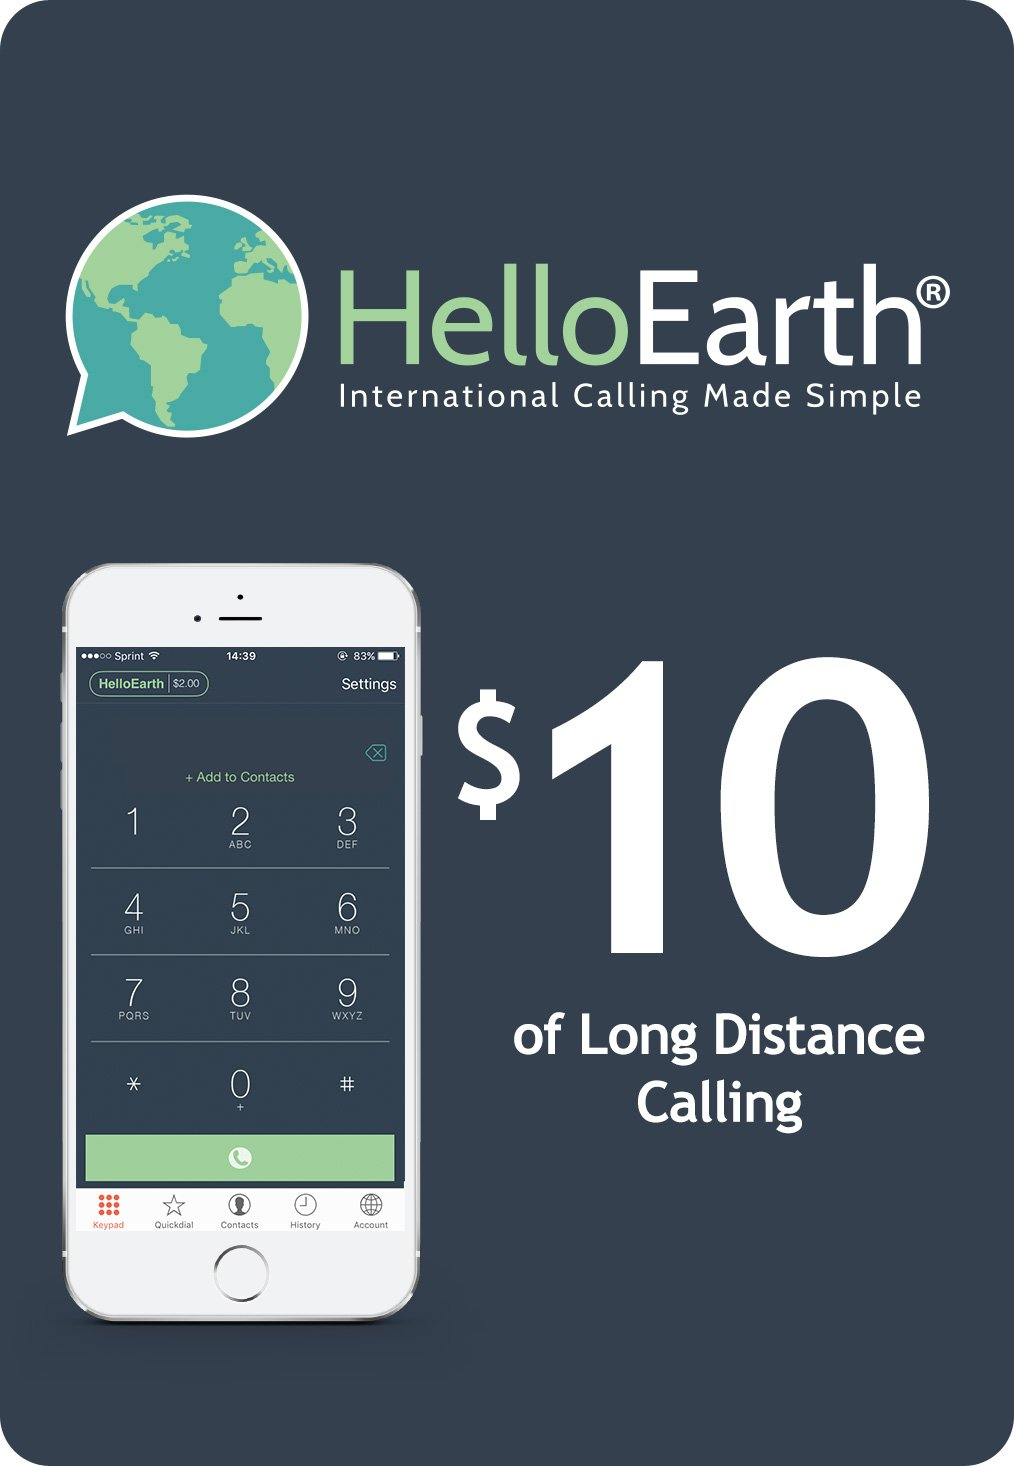 international calling great long distance calling rates best call quality - Best Calling Cards